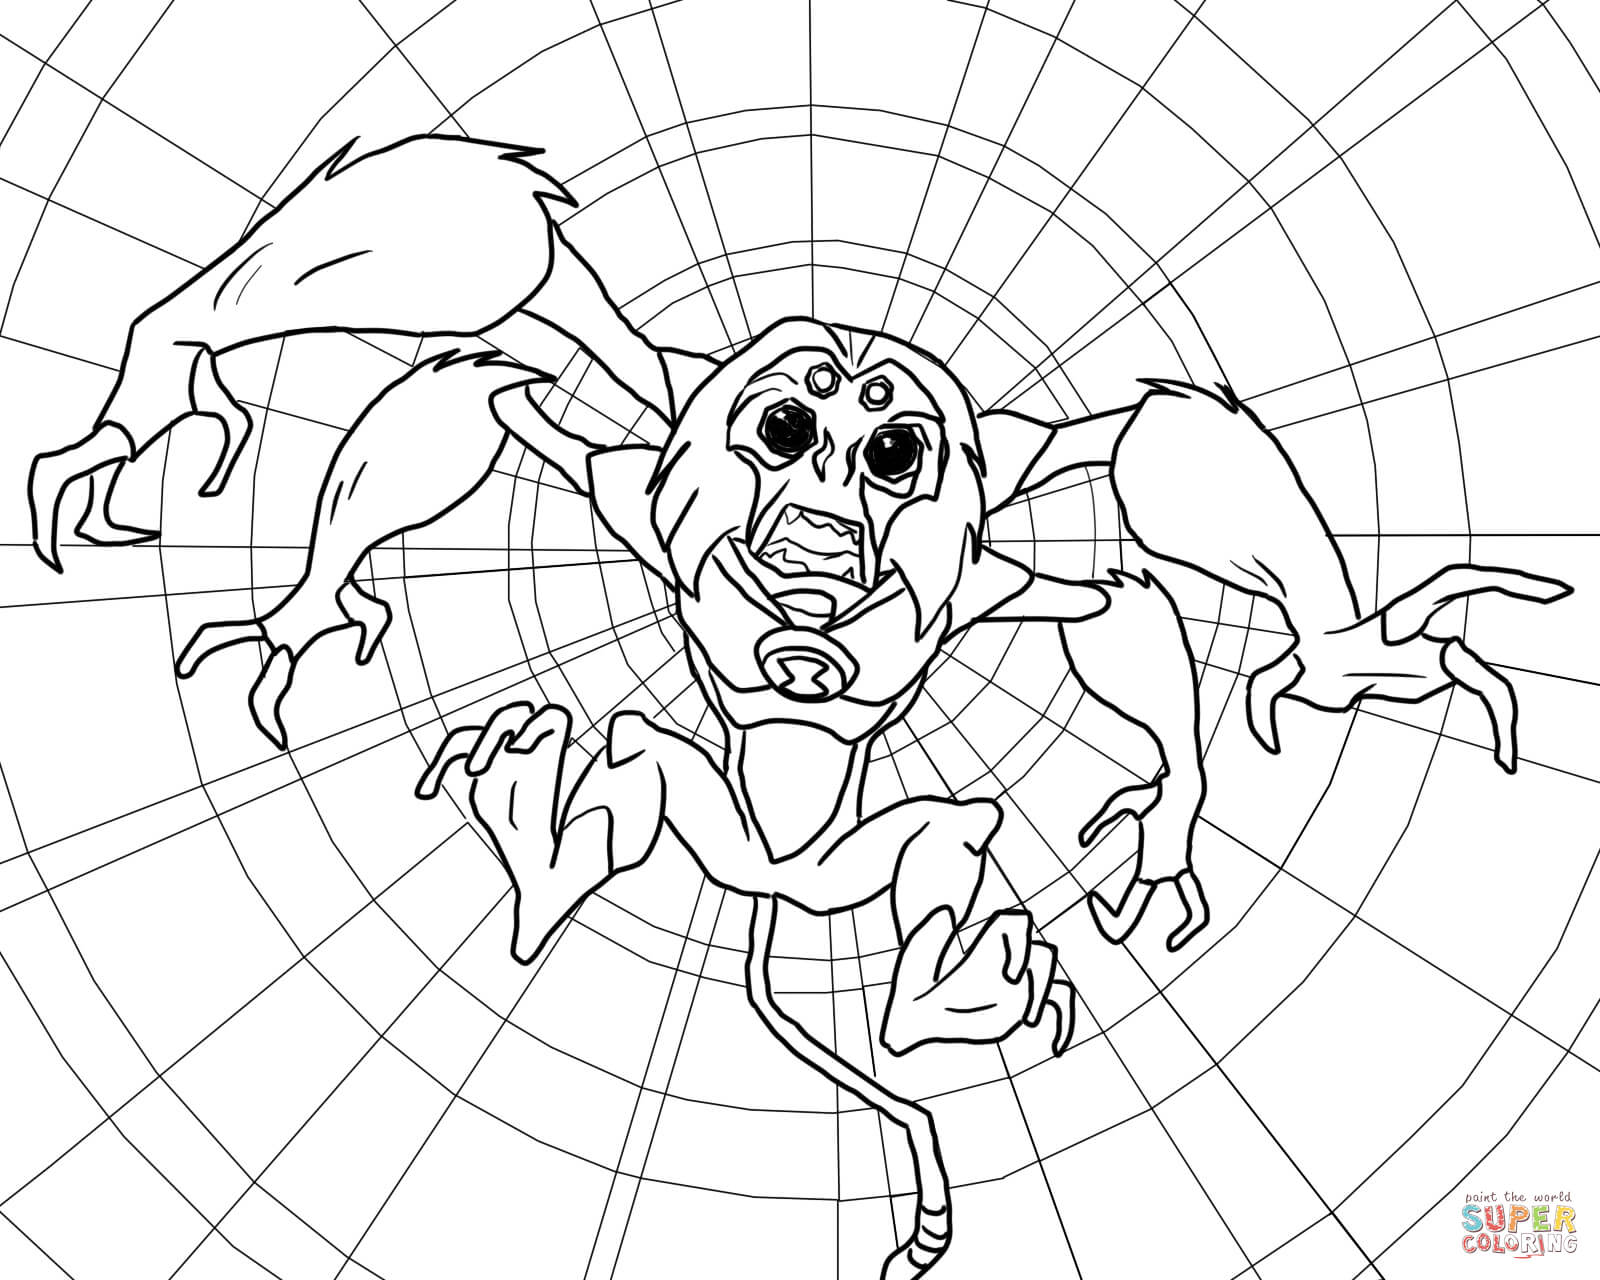 Ben 10 Alien Force Coloring Pages Swampfire - Coloring Home